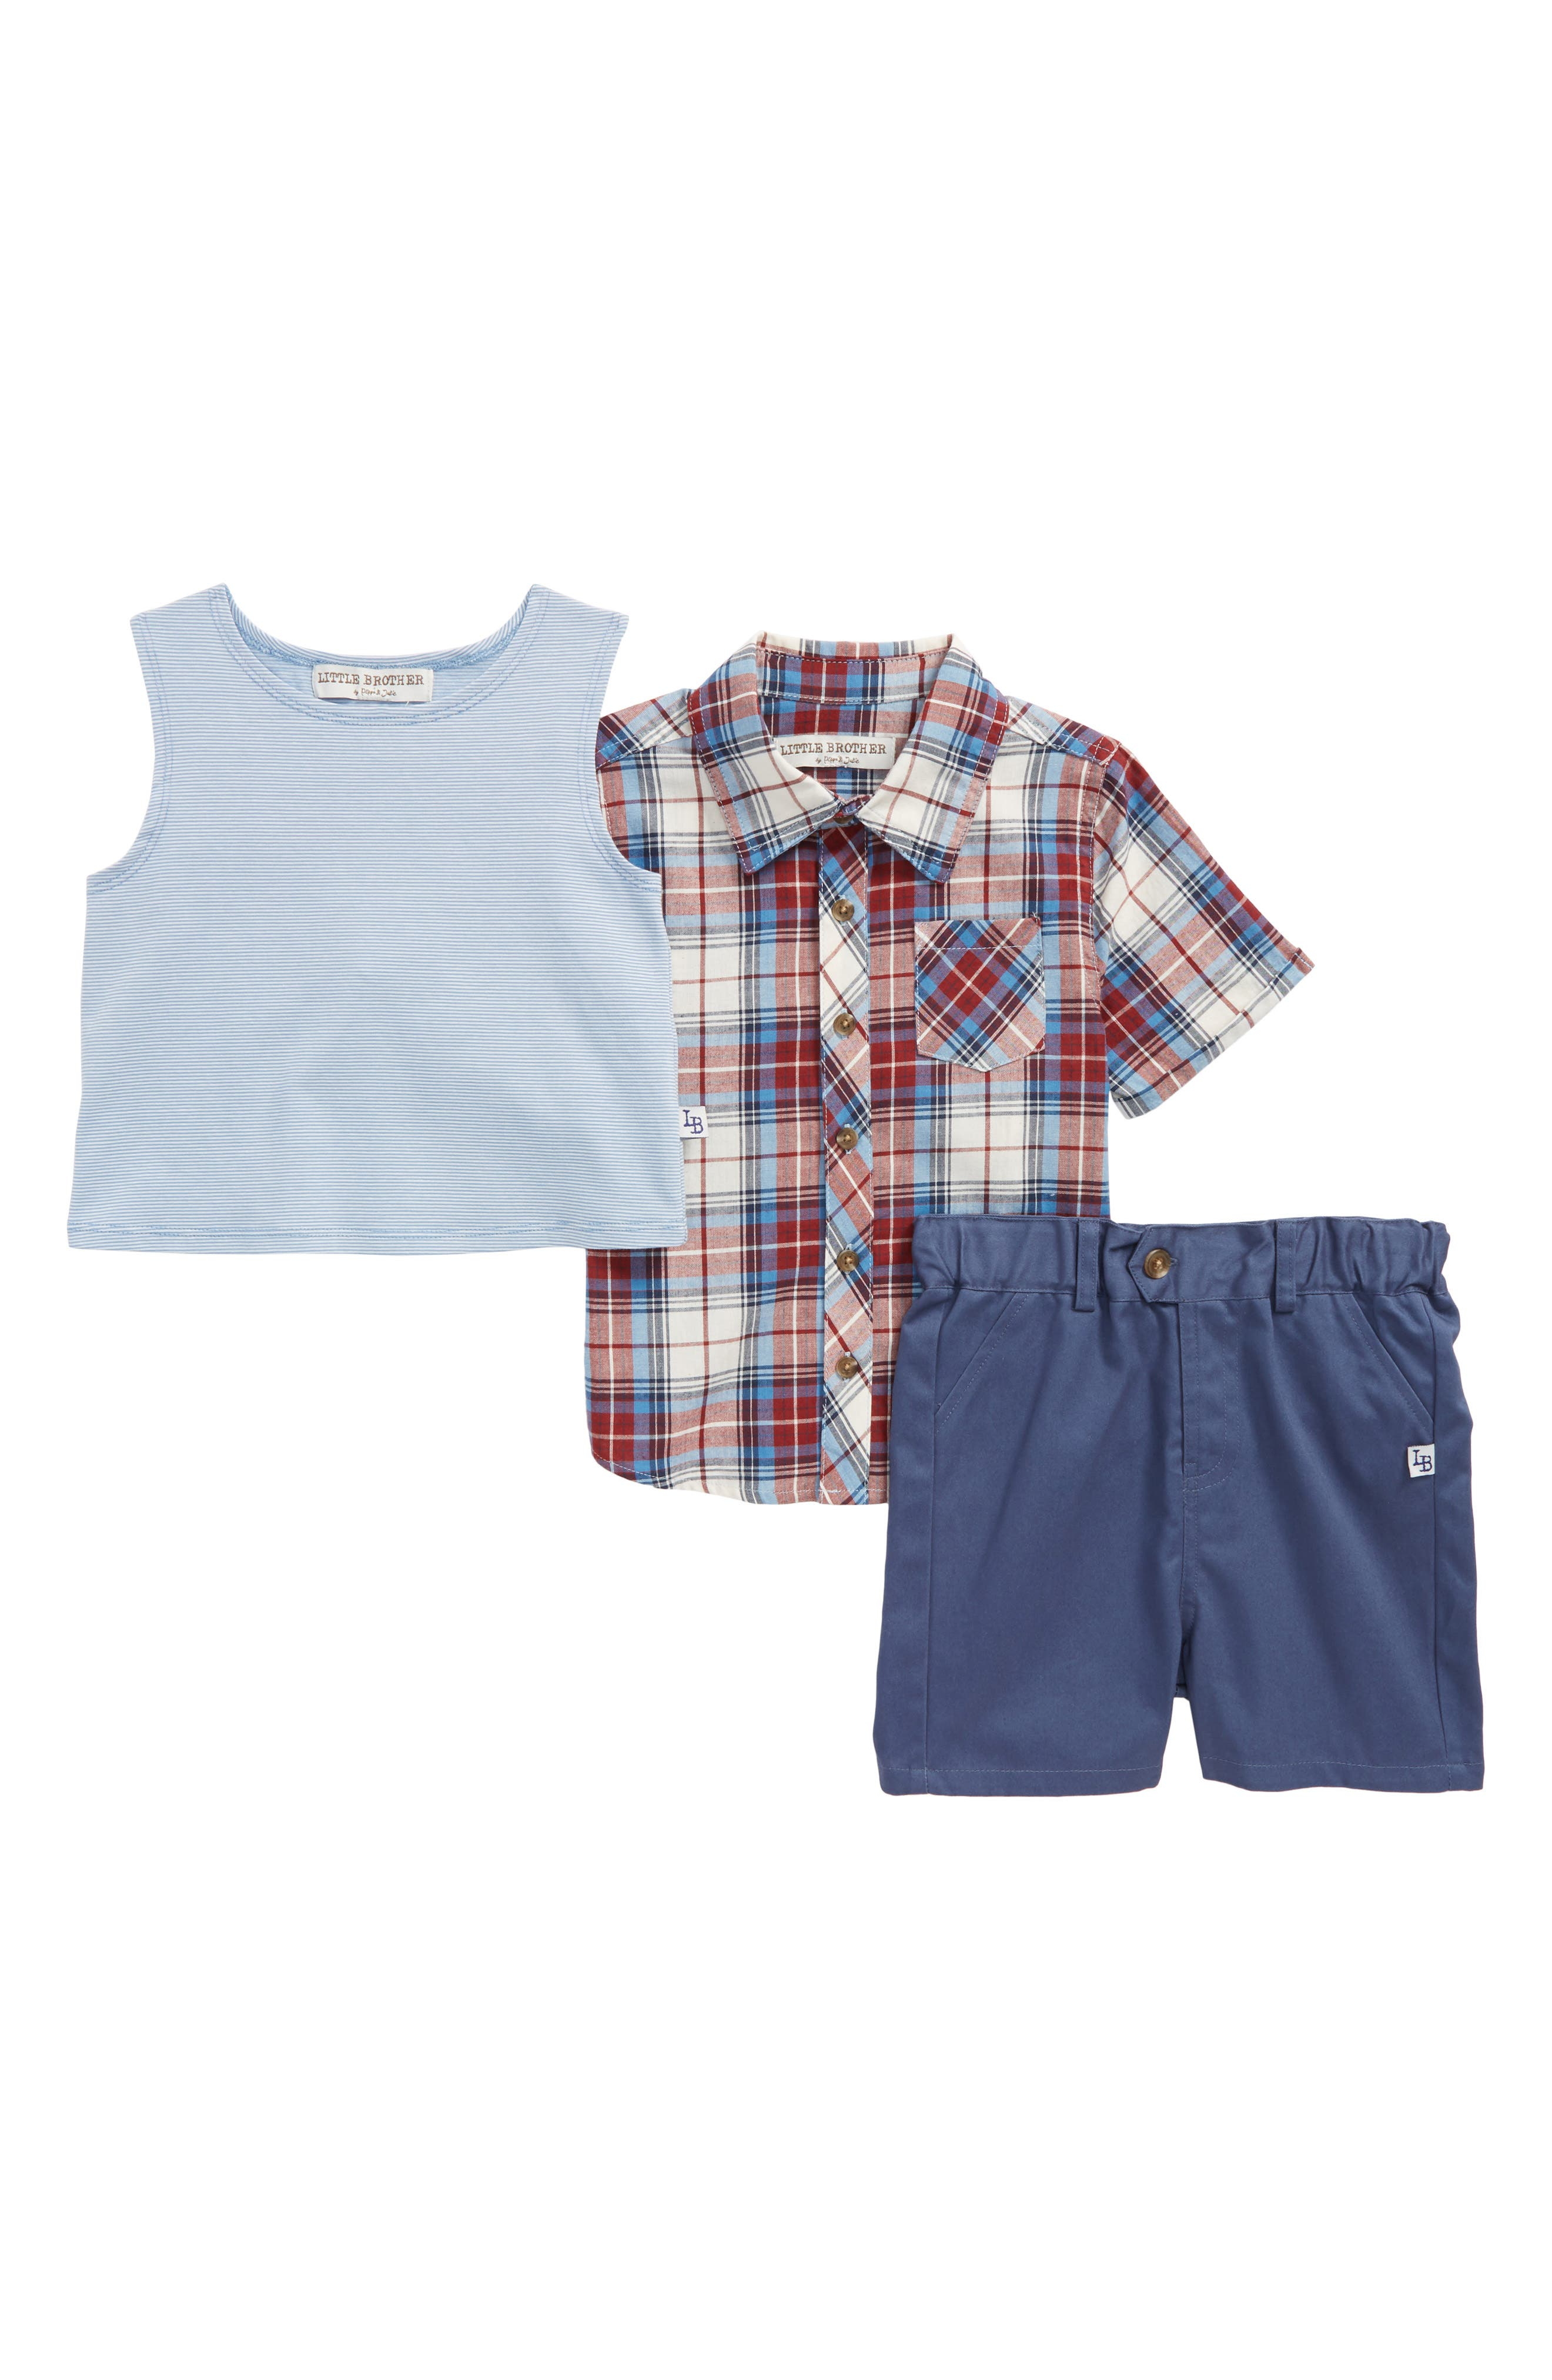 Little Brother by Pippa & Julie Plaid Shirt, Tank Top & Shorts Set (Toddler Boys)